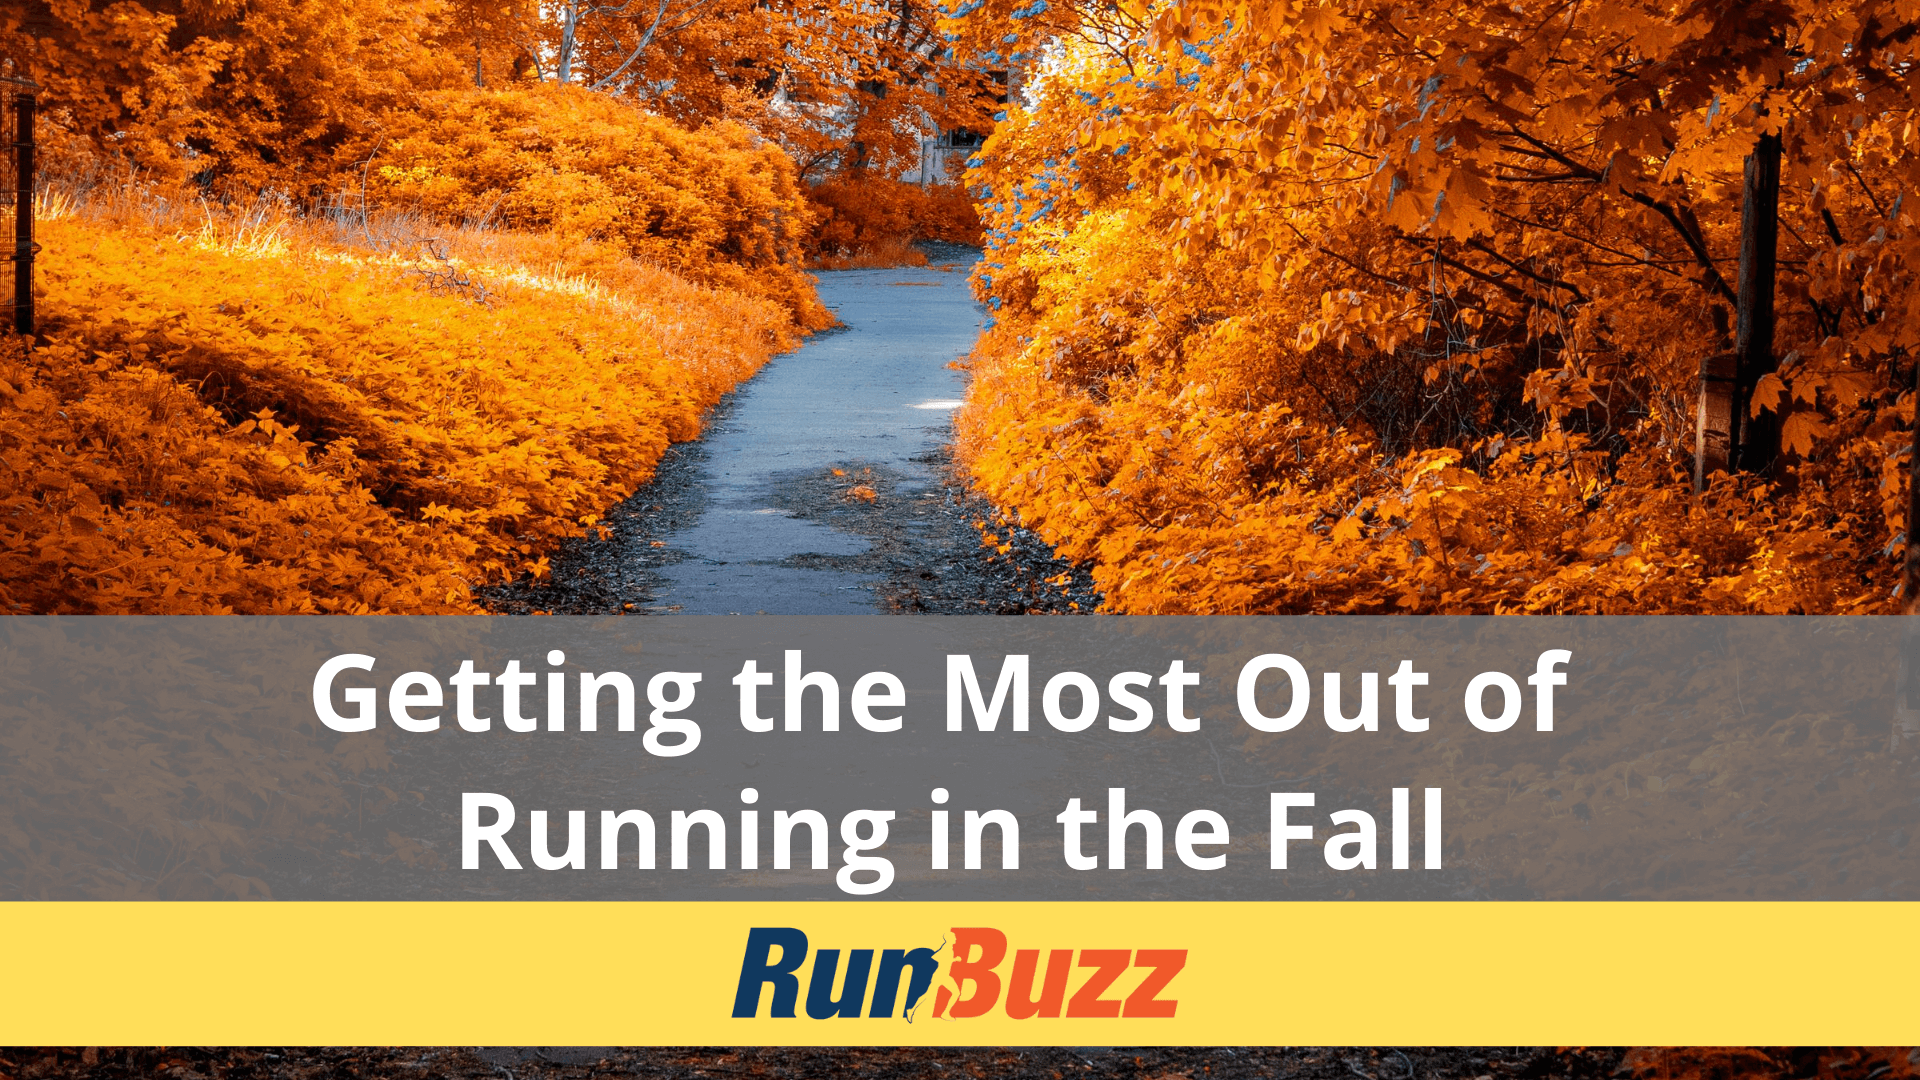 Getting-the-Most-Out-of-Running-in-the-Fall